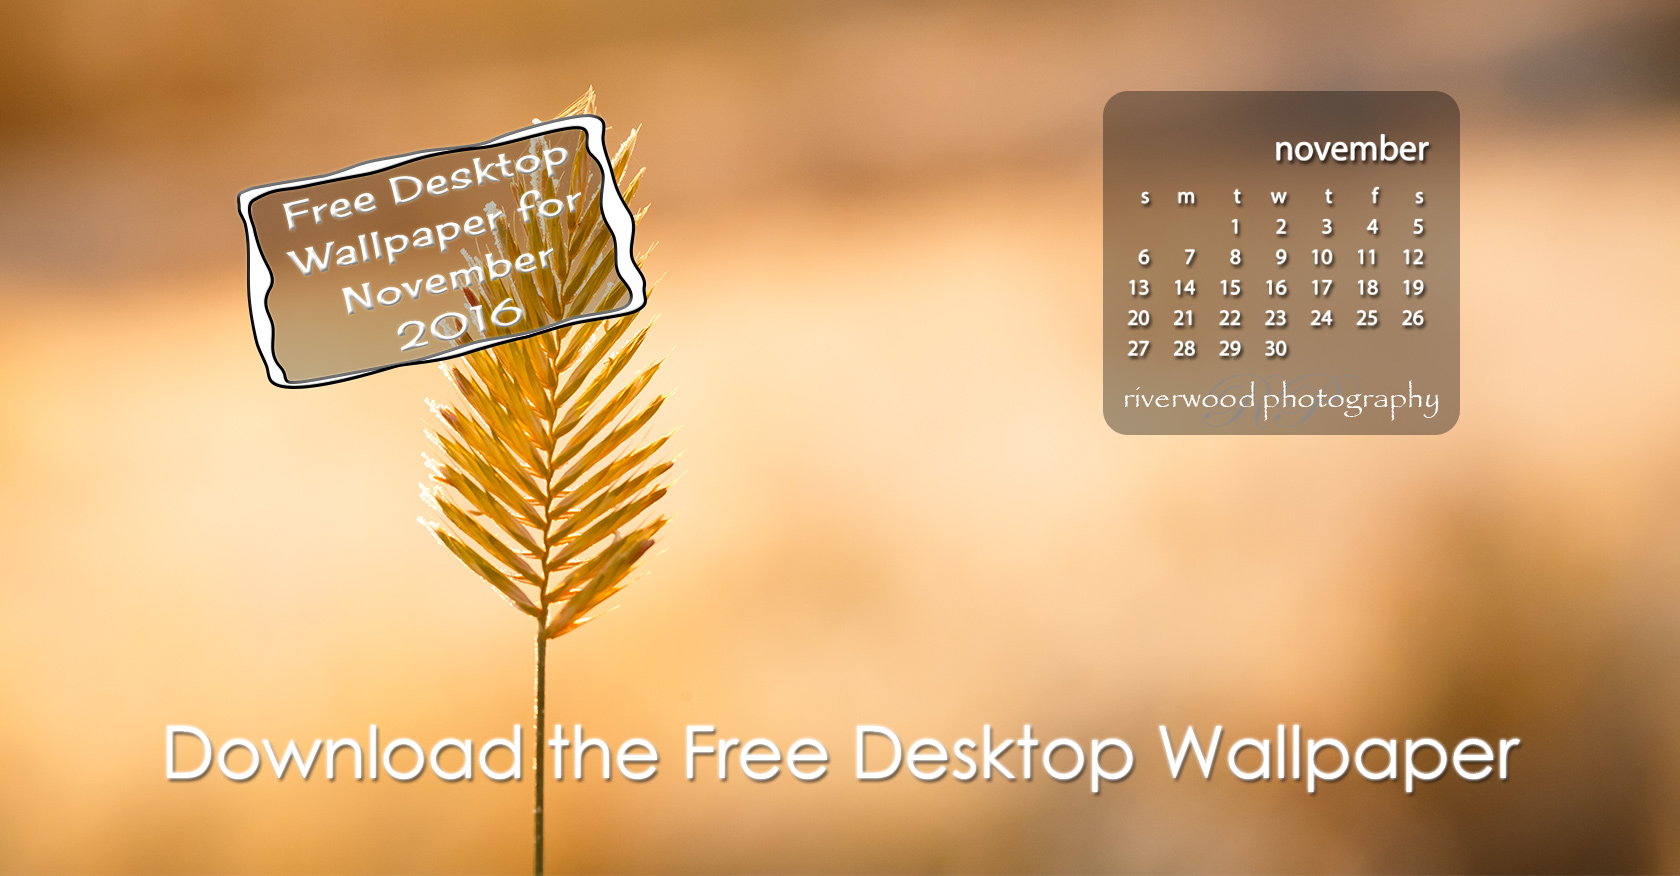 Free Desktop Wallpaper for November 2016